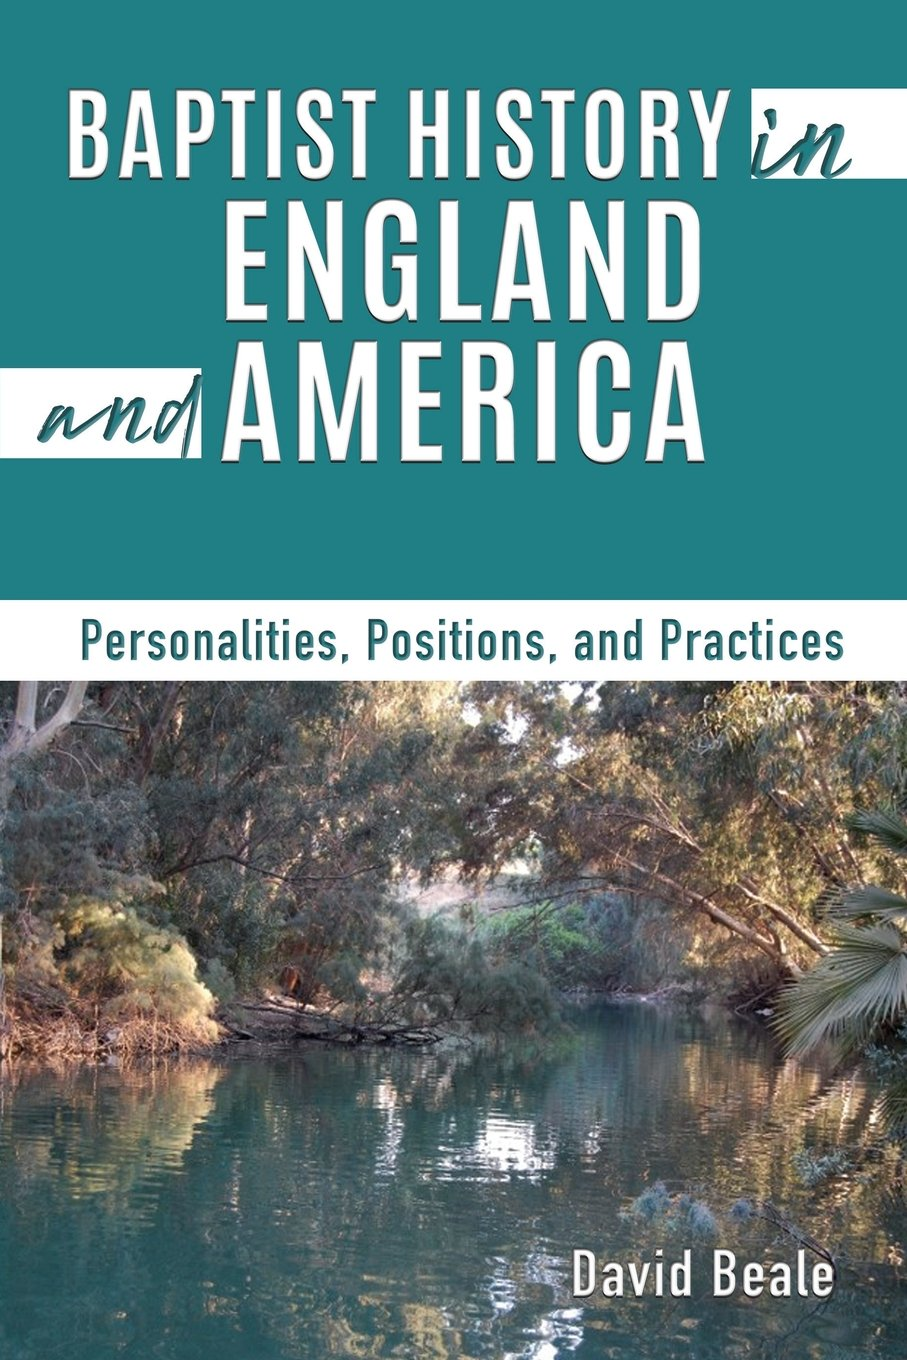 Baptist History in England and America: Personalities, Positions, and Practices PDF